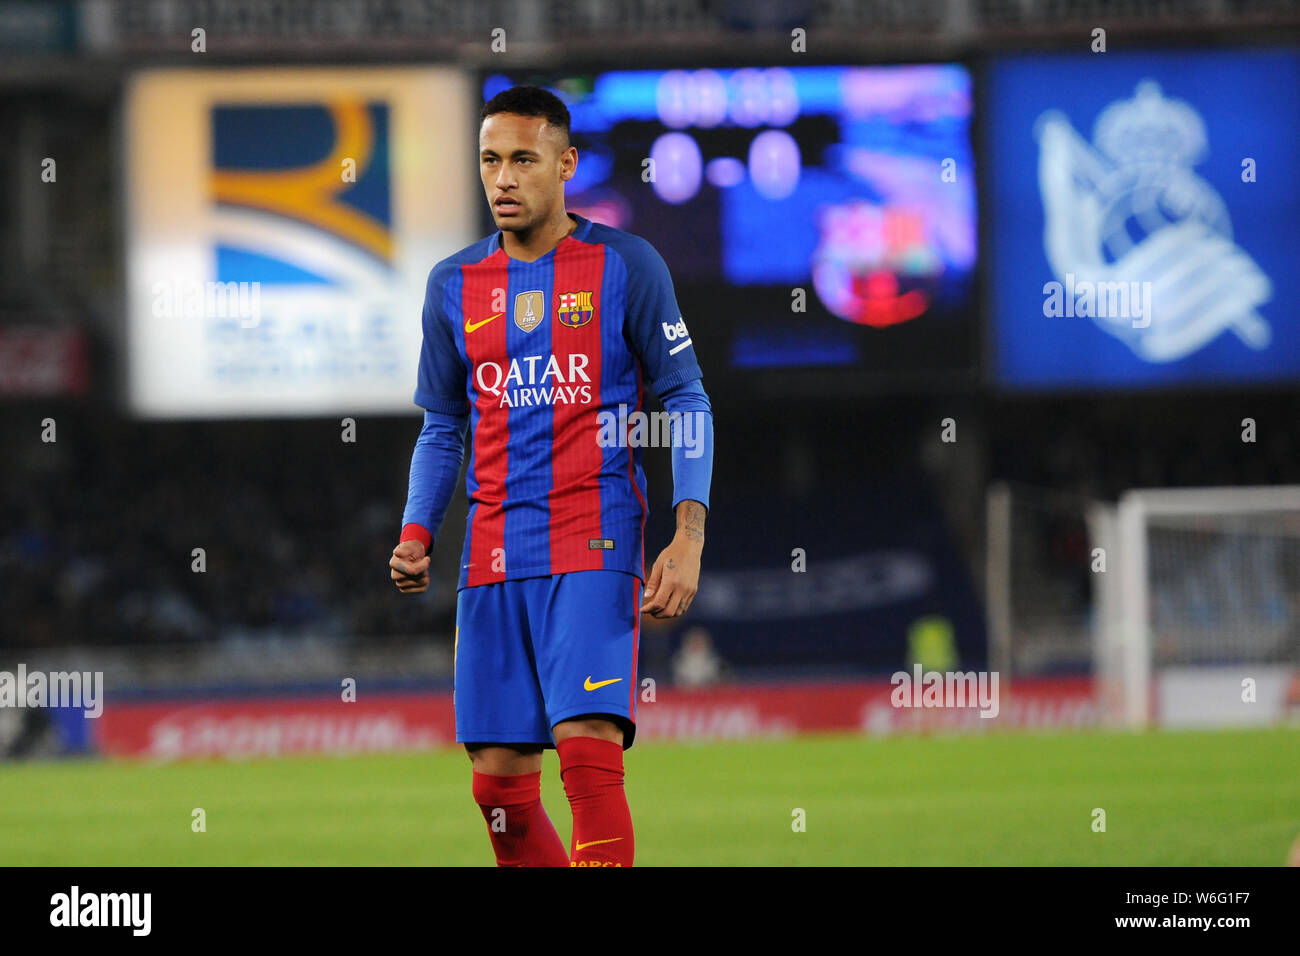 Neymar During The Match Between Real Sociedad And Futbol Club Barcelona Held At Anoeta Stadium Credit Image C Julen Pascual Gonzalez Stock Photo Alamy